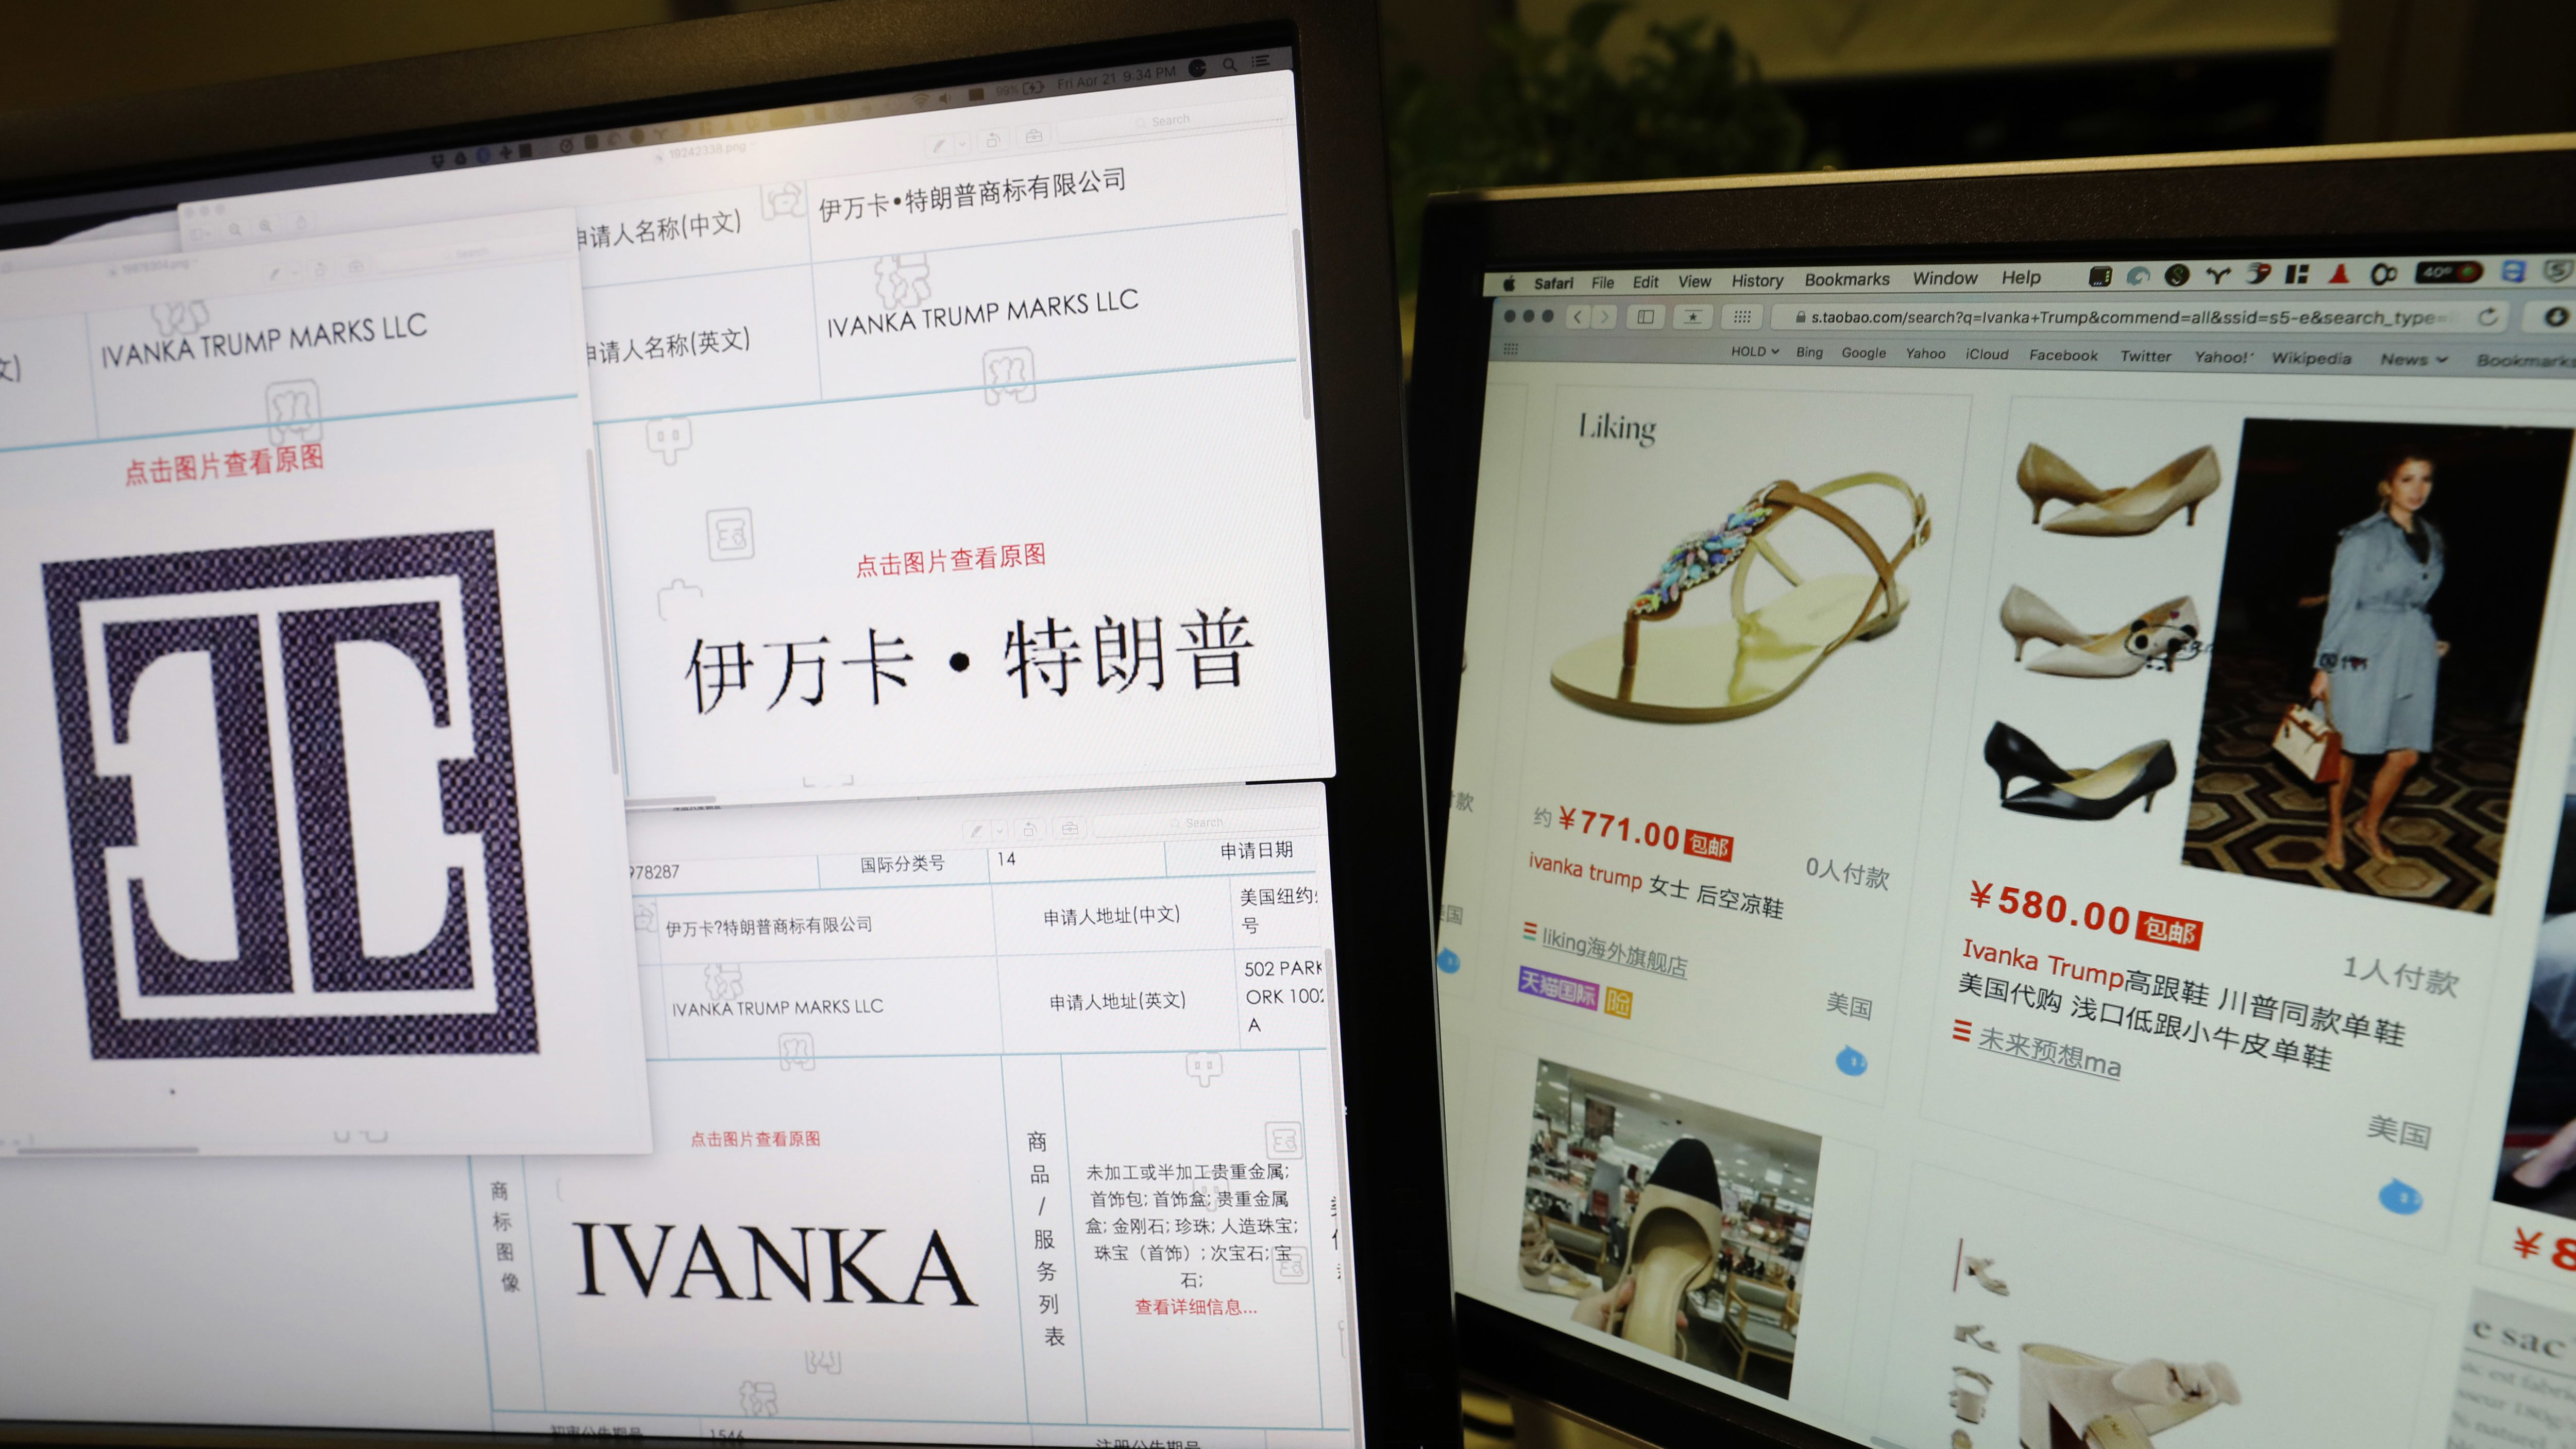 In this April 21, 2017, file photo, trademark applications from Ivanka Trump Marks LLC images taken off the website of China's trademark database are displayed next to a Chinese online shopping website selling purported Ivanka Trump branded footwear on computer screens in Beijing, China. Three men investigating a company in China that produces Ivanka Trump brand shoes are missing, according to Li Qiang who runs China Labor Watch, a New York-based labor rights group that was planning to publish a report in June, 2017, about low pay, excessive overtime and the possible misuse of student interns at one of the company's factories.